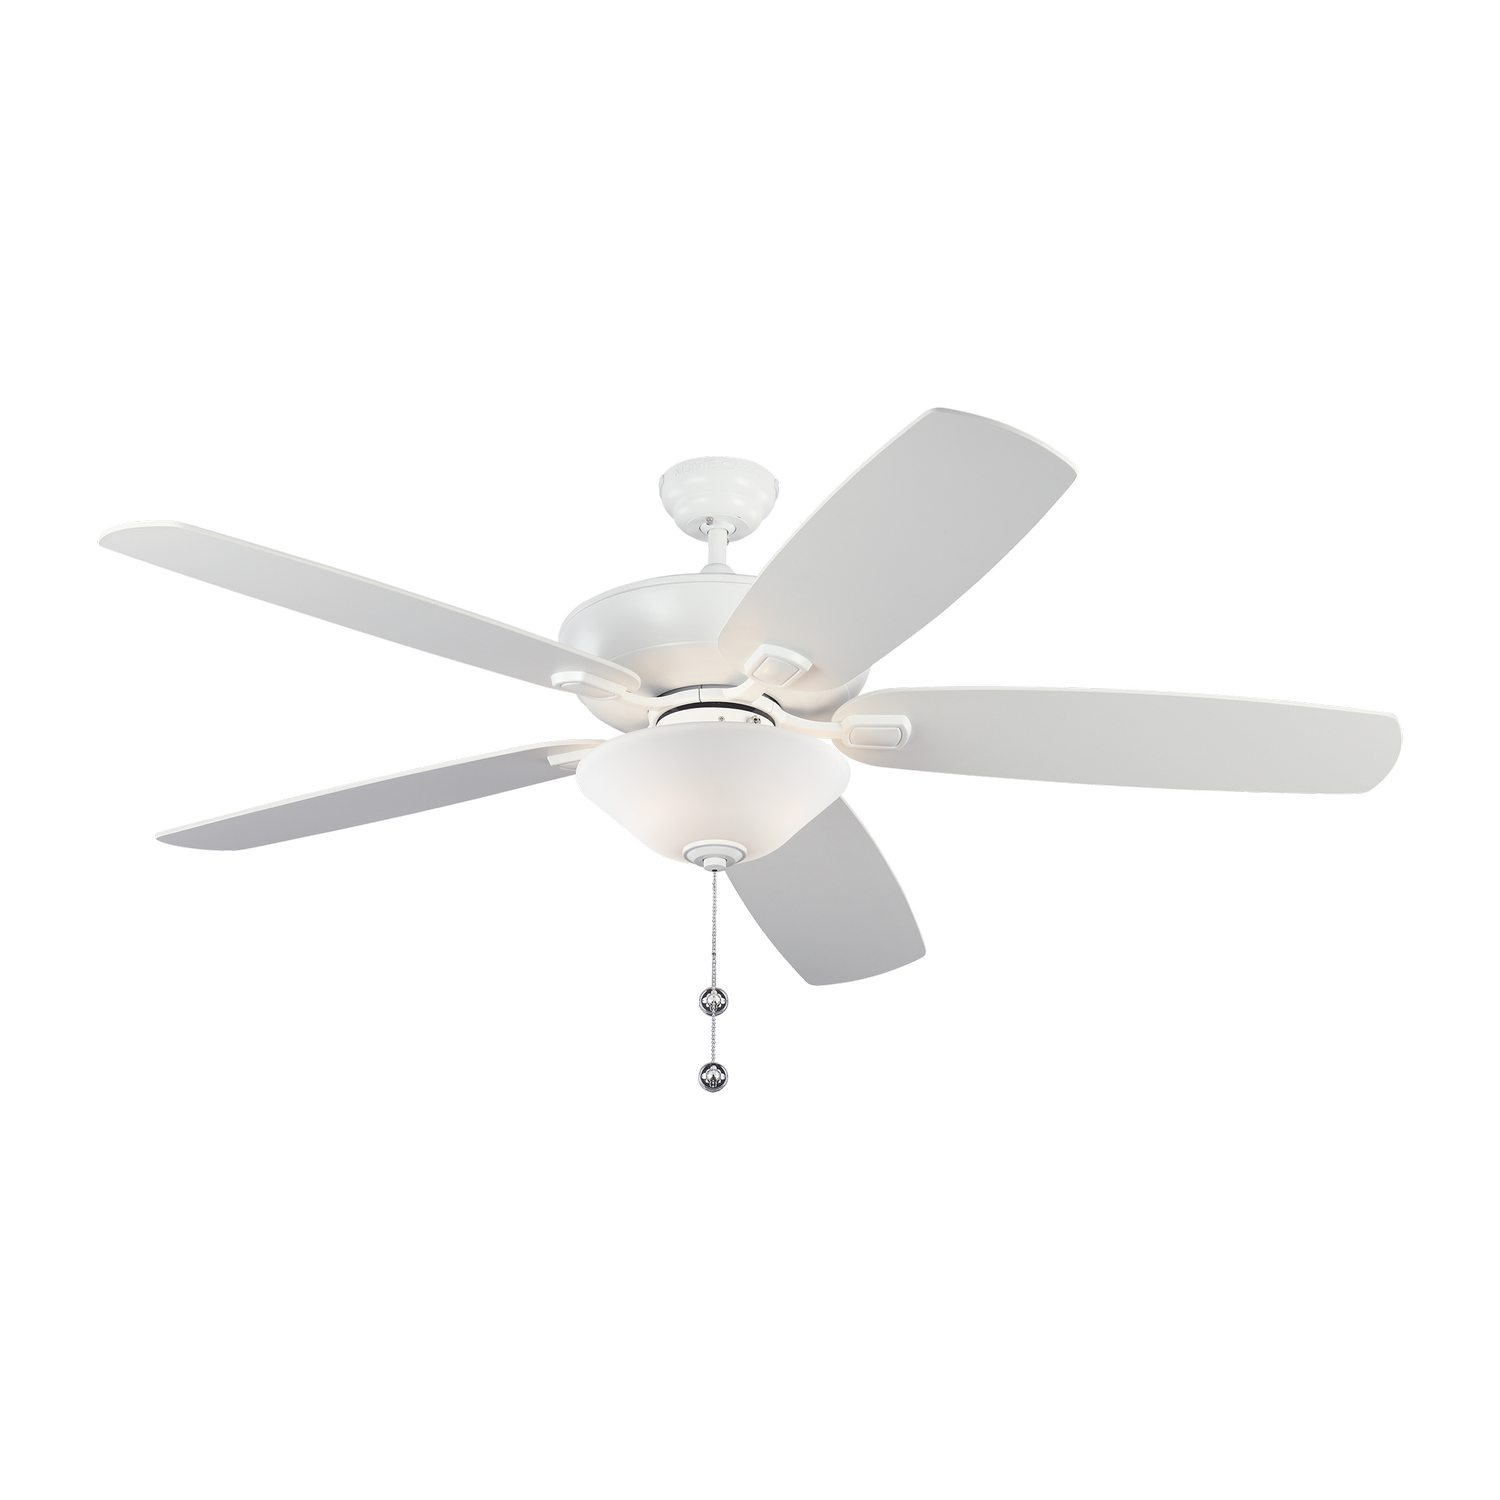 60 inchCeiling Fan from the Colony Super Max Plus collection by Monte Carlo 5CSM60RZWD